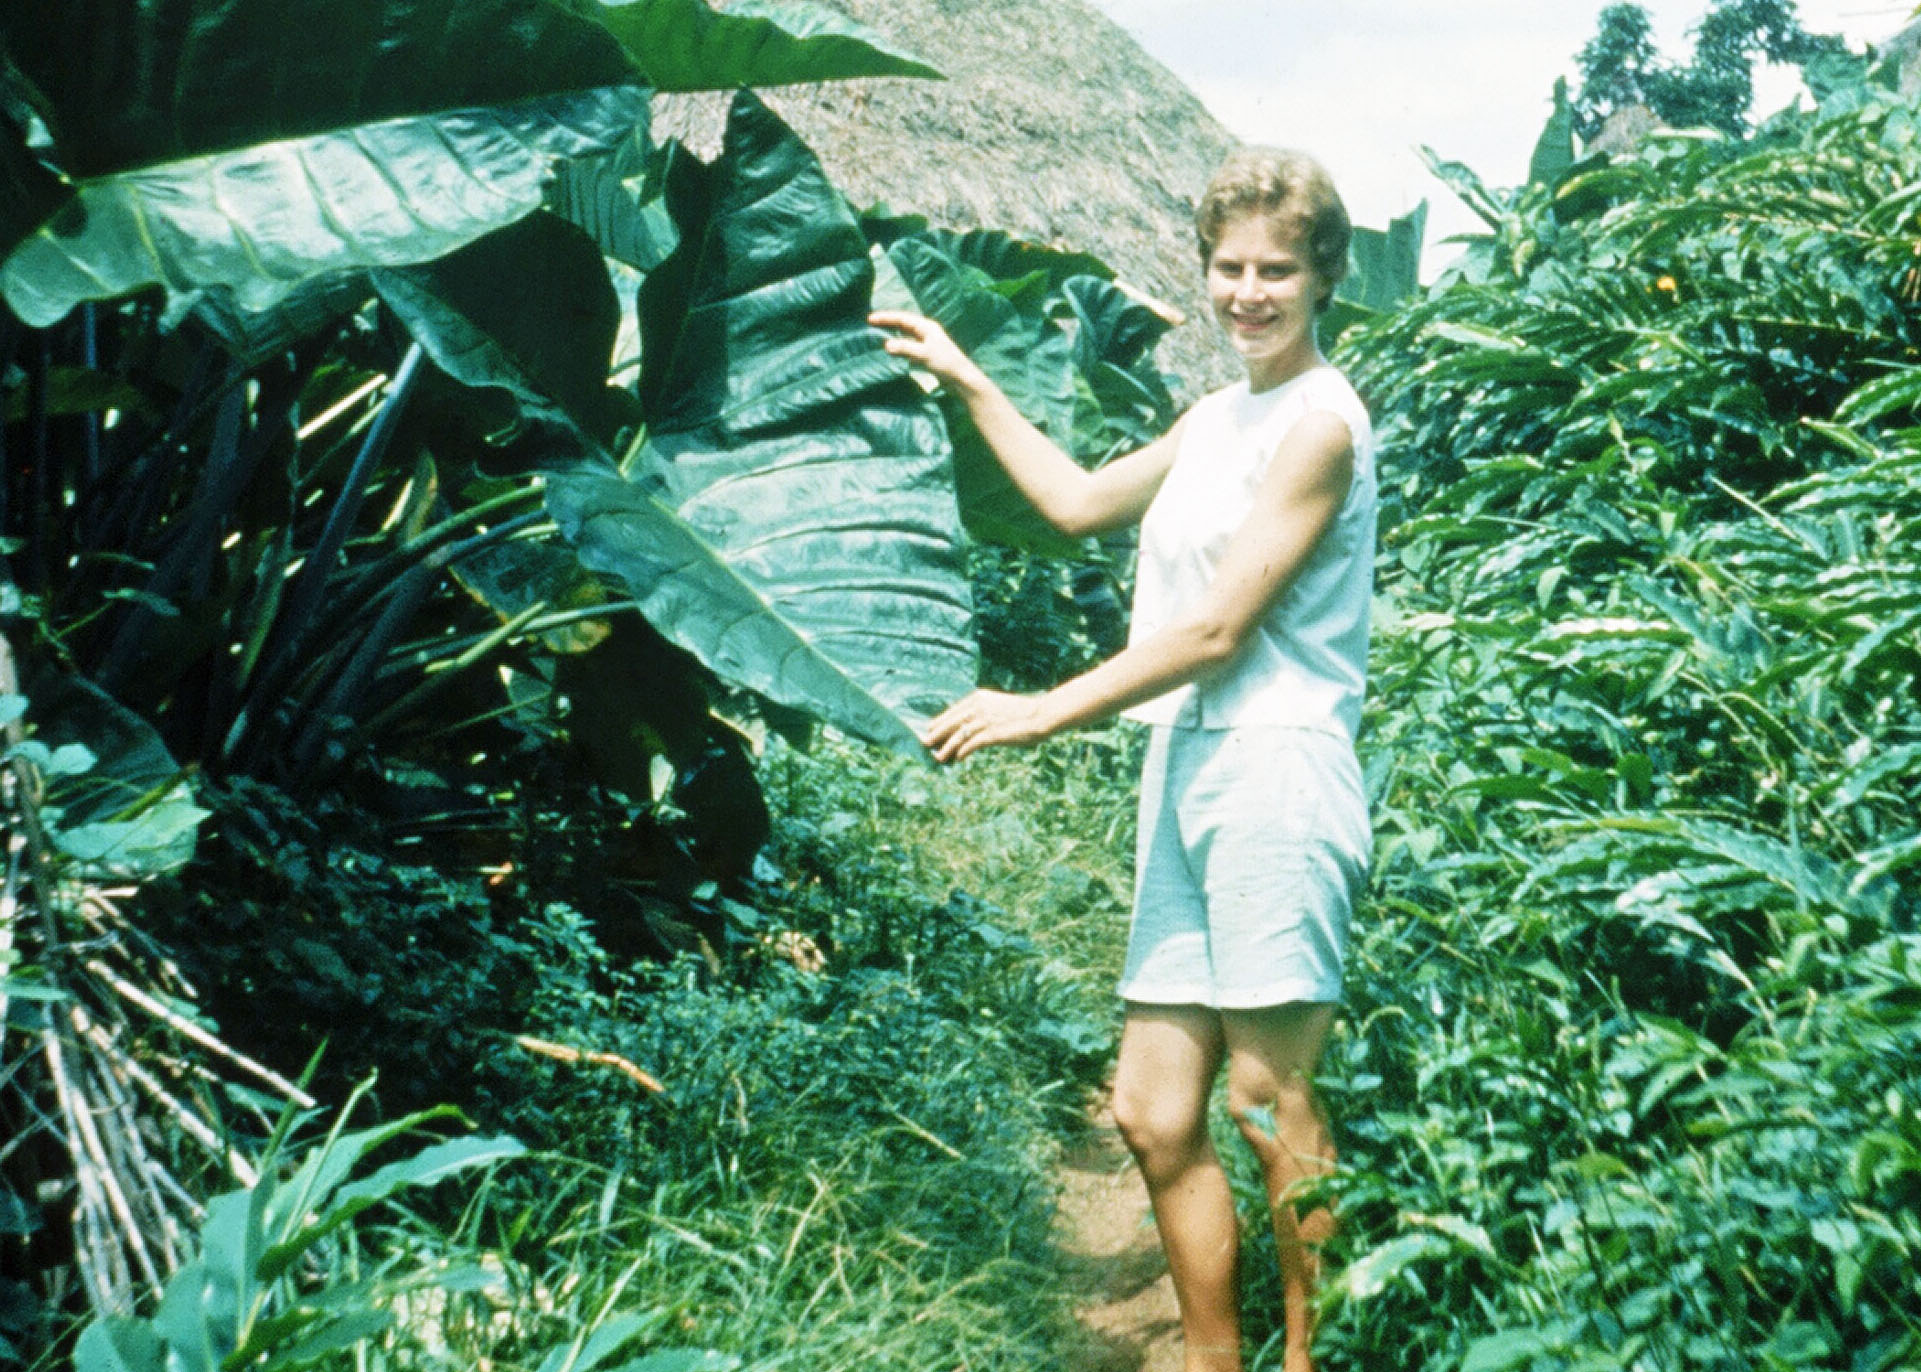 Jo Ann holds an Eddo or Taro leaf. The tubers of this plant are used as food throughout the tropics.